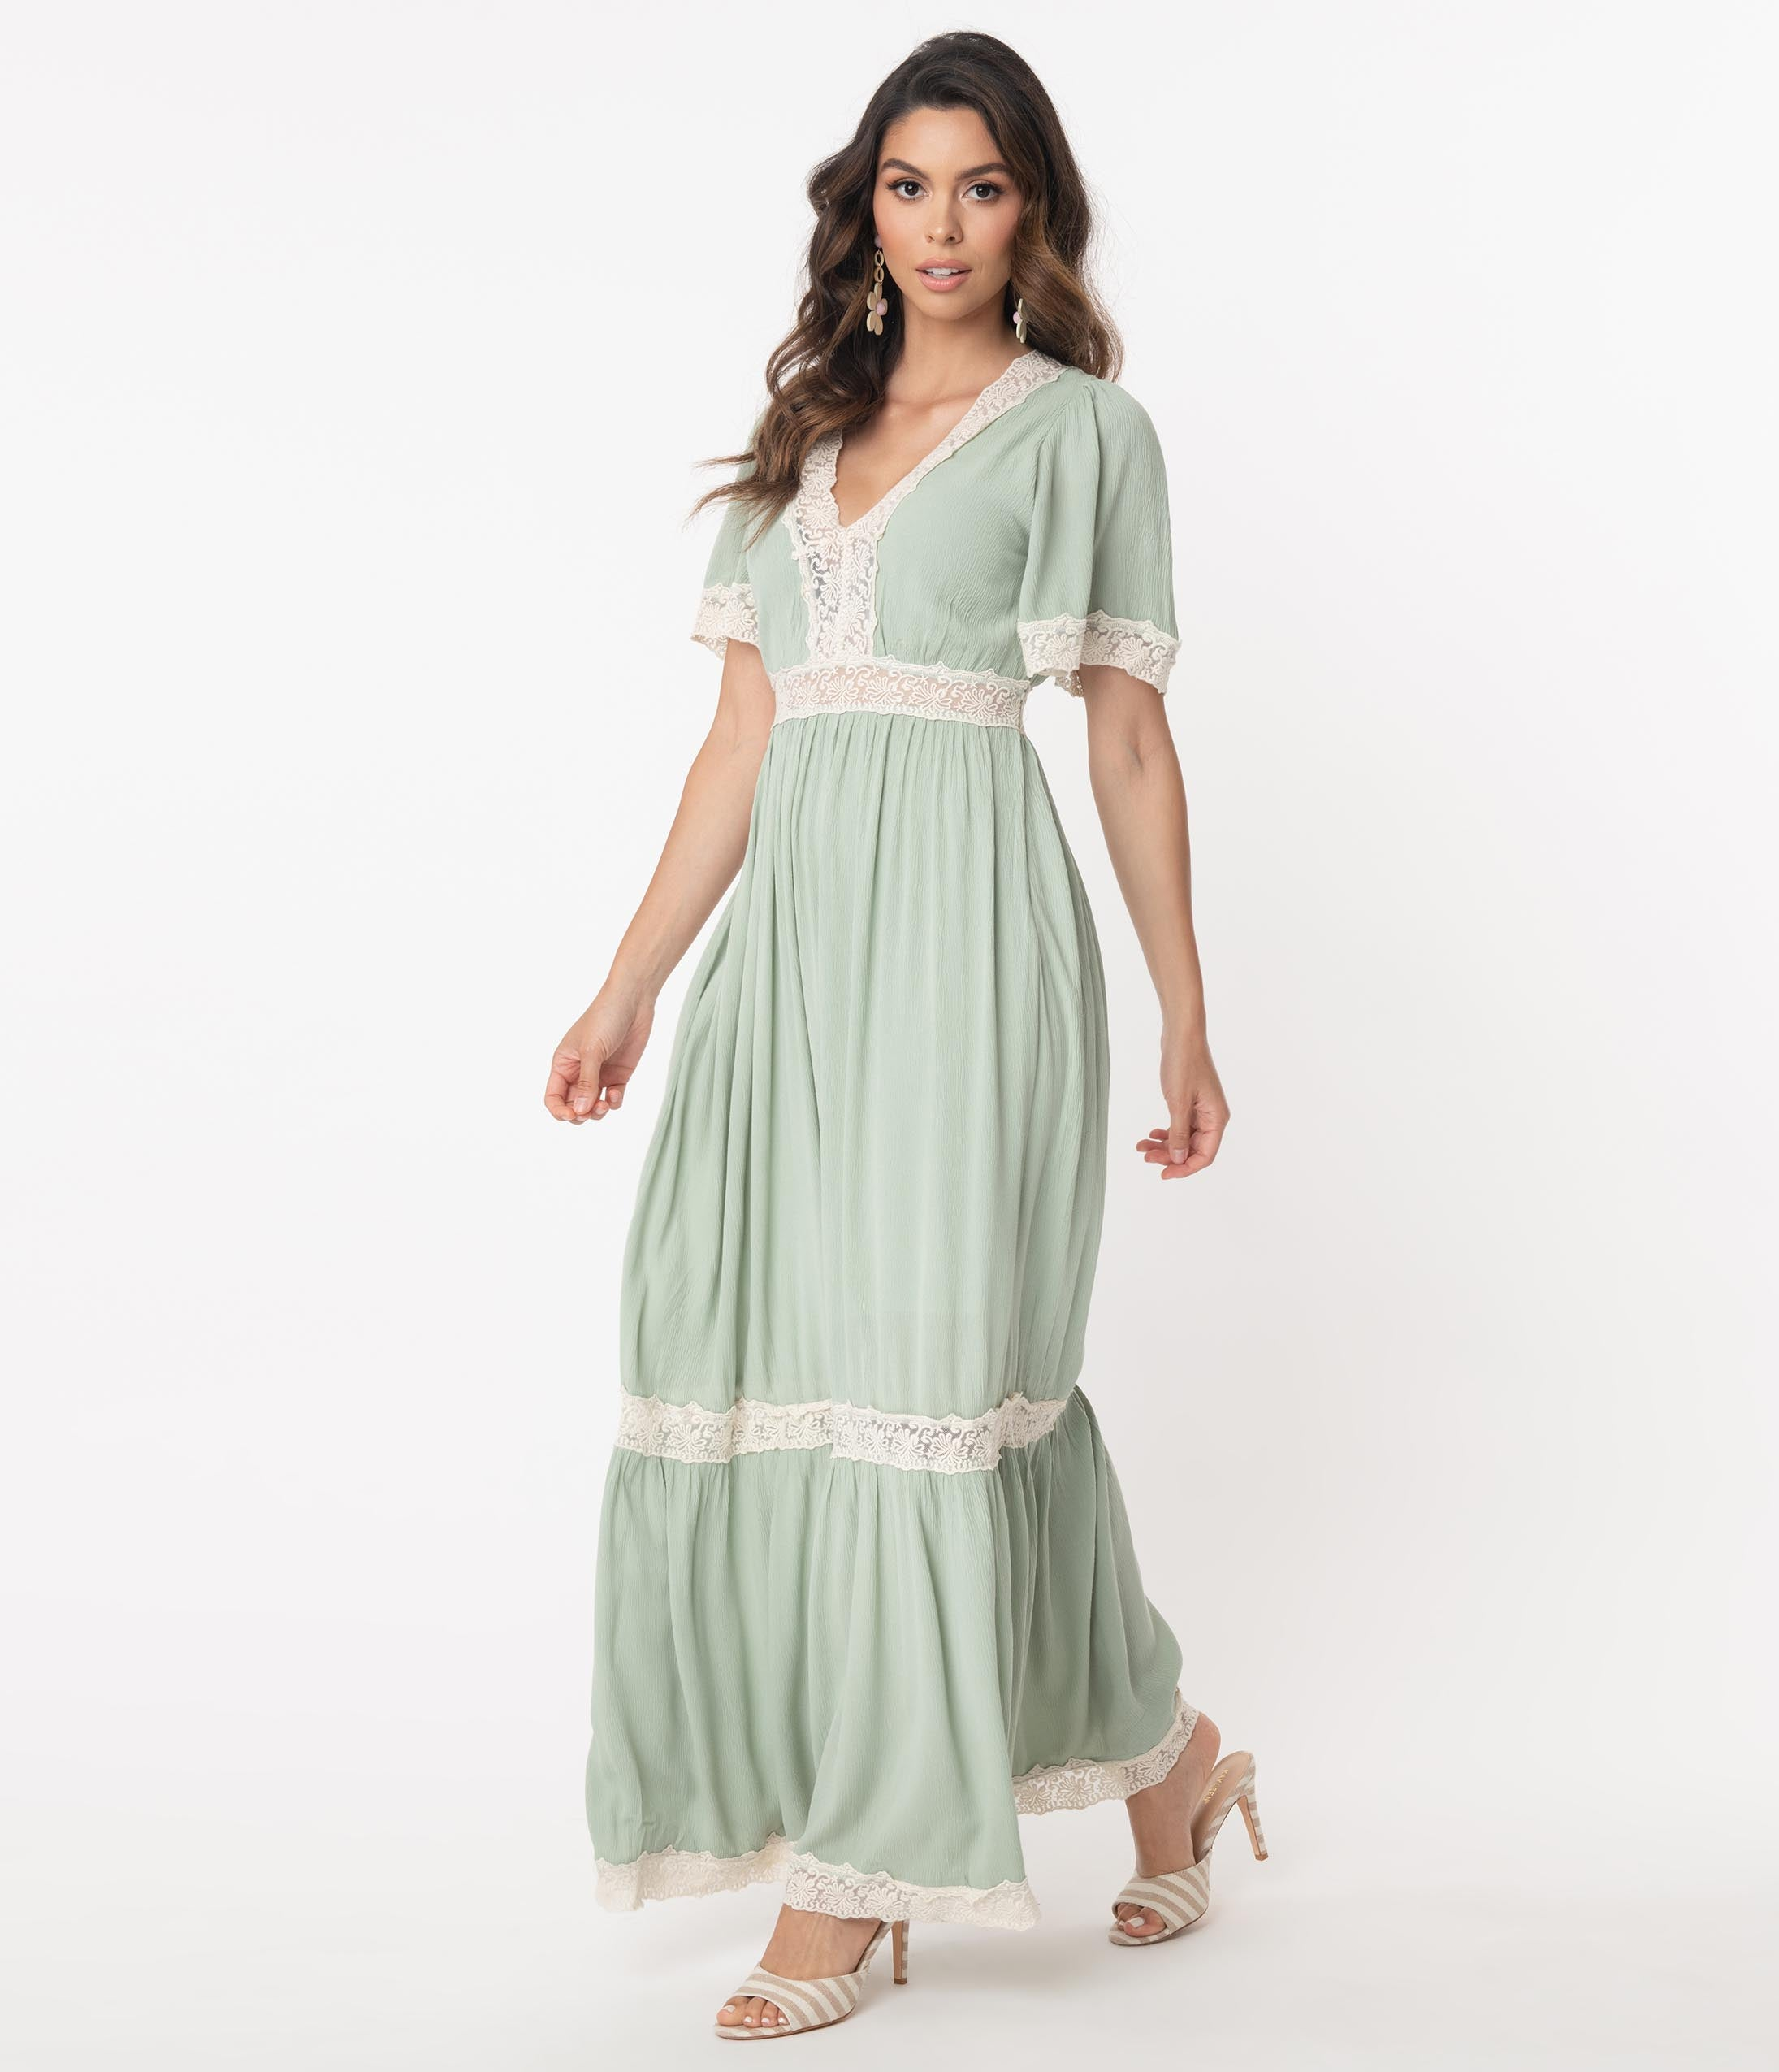 70s Dresses – Disco Dress, Hippie Dress, Wrap Dress 1970S Style Seafoam Lace Trim Maxi Dress $68.00 AT vintagedancer.com